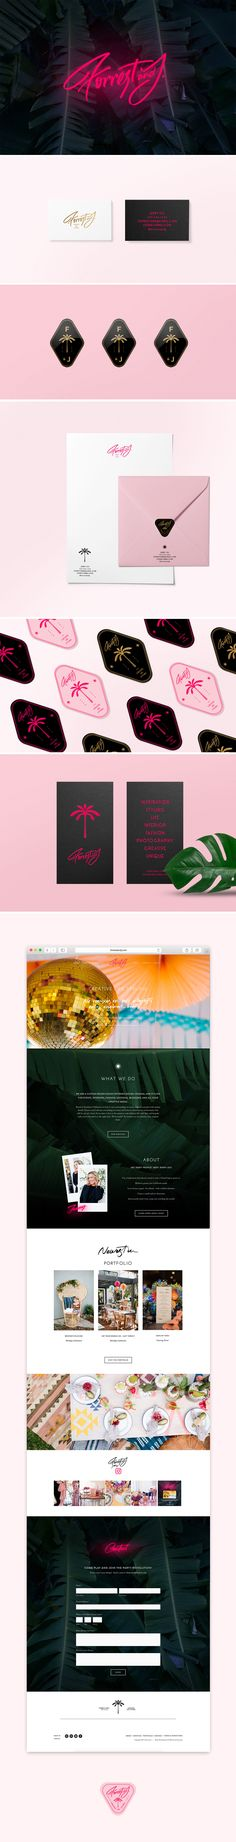 Brand Identity and Collateral Design for a Stylist / Forrest and J. by Cocorrina Collateral Design, Brand Identity Design, Corporate Design, Branding Design, Logo Design, Branding Ideas, Branding Agency, Business Branding, Business Card Design